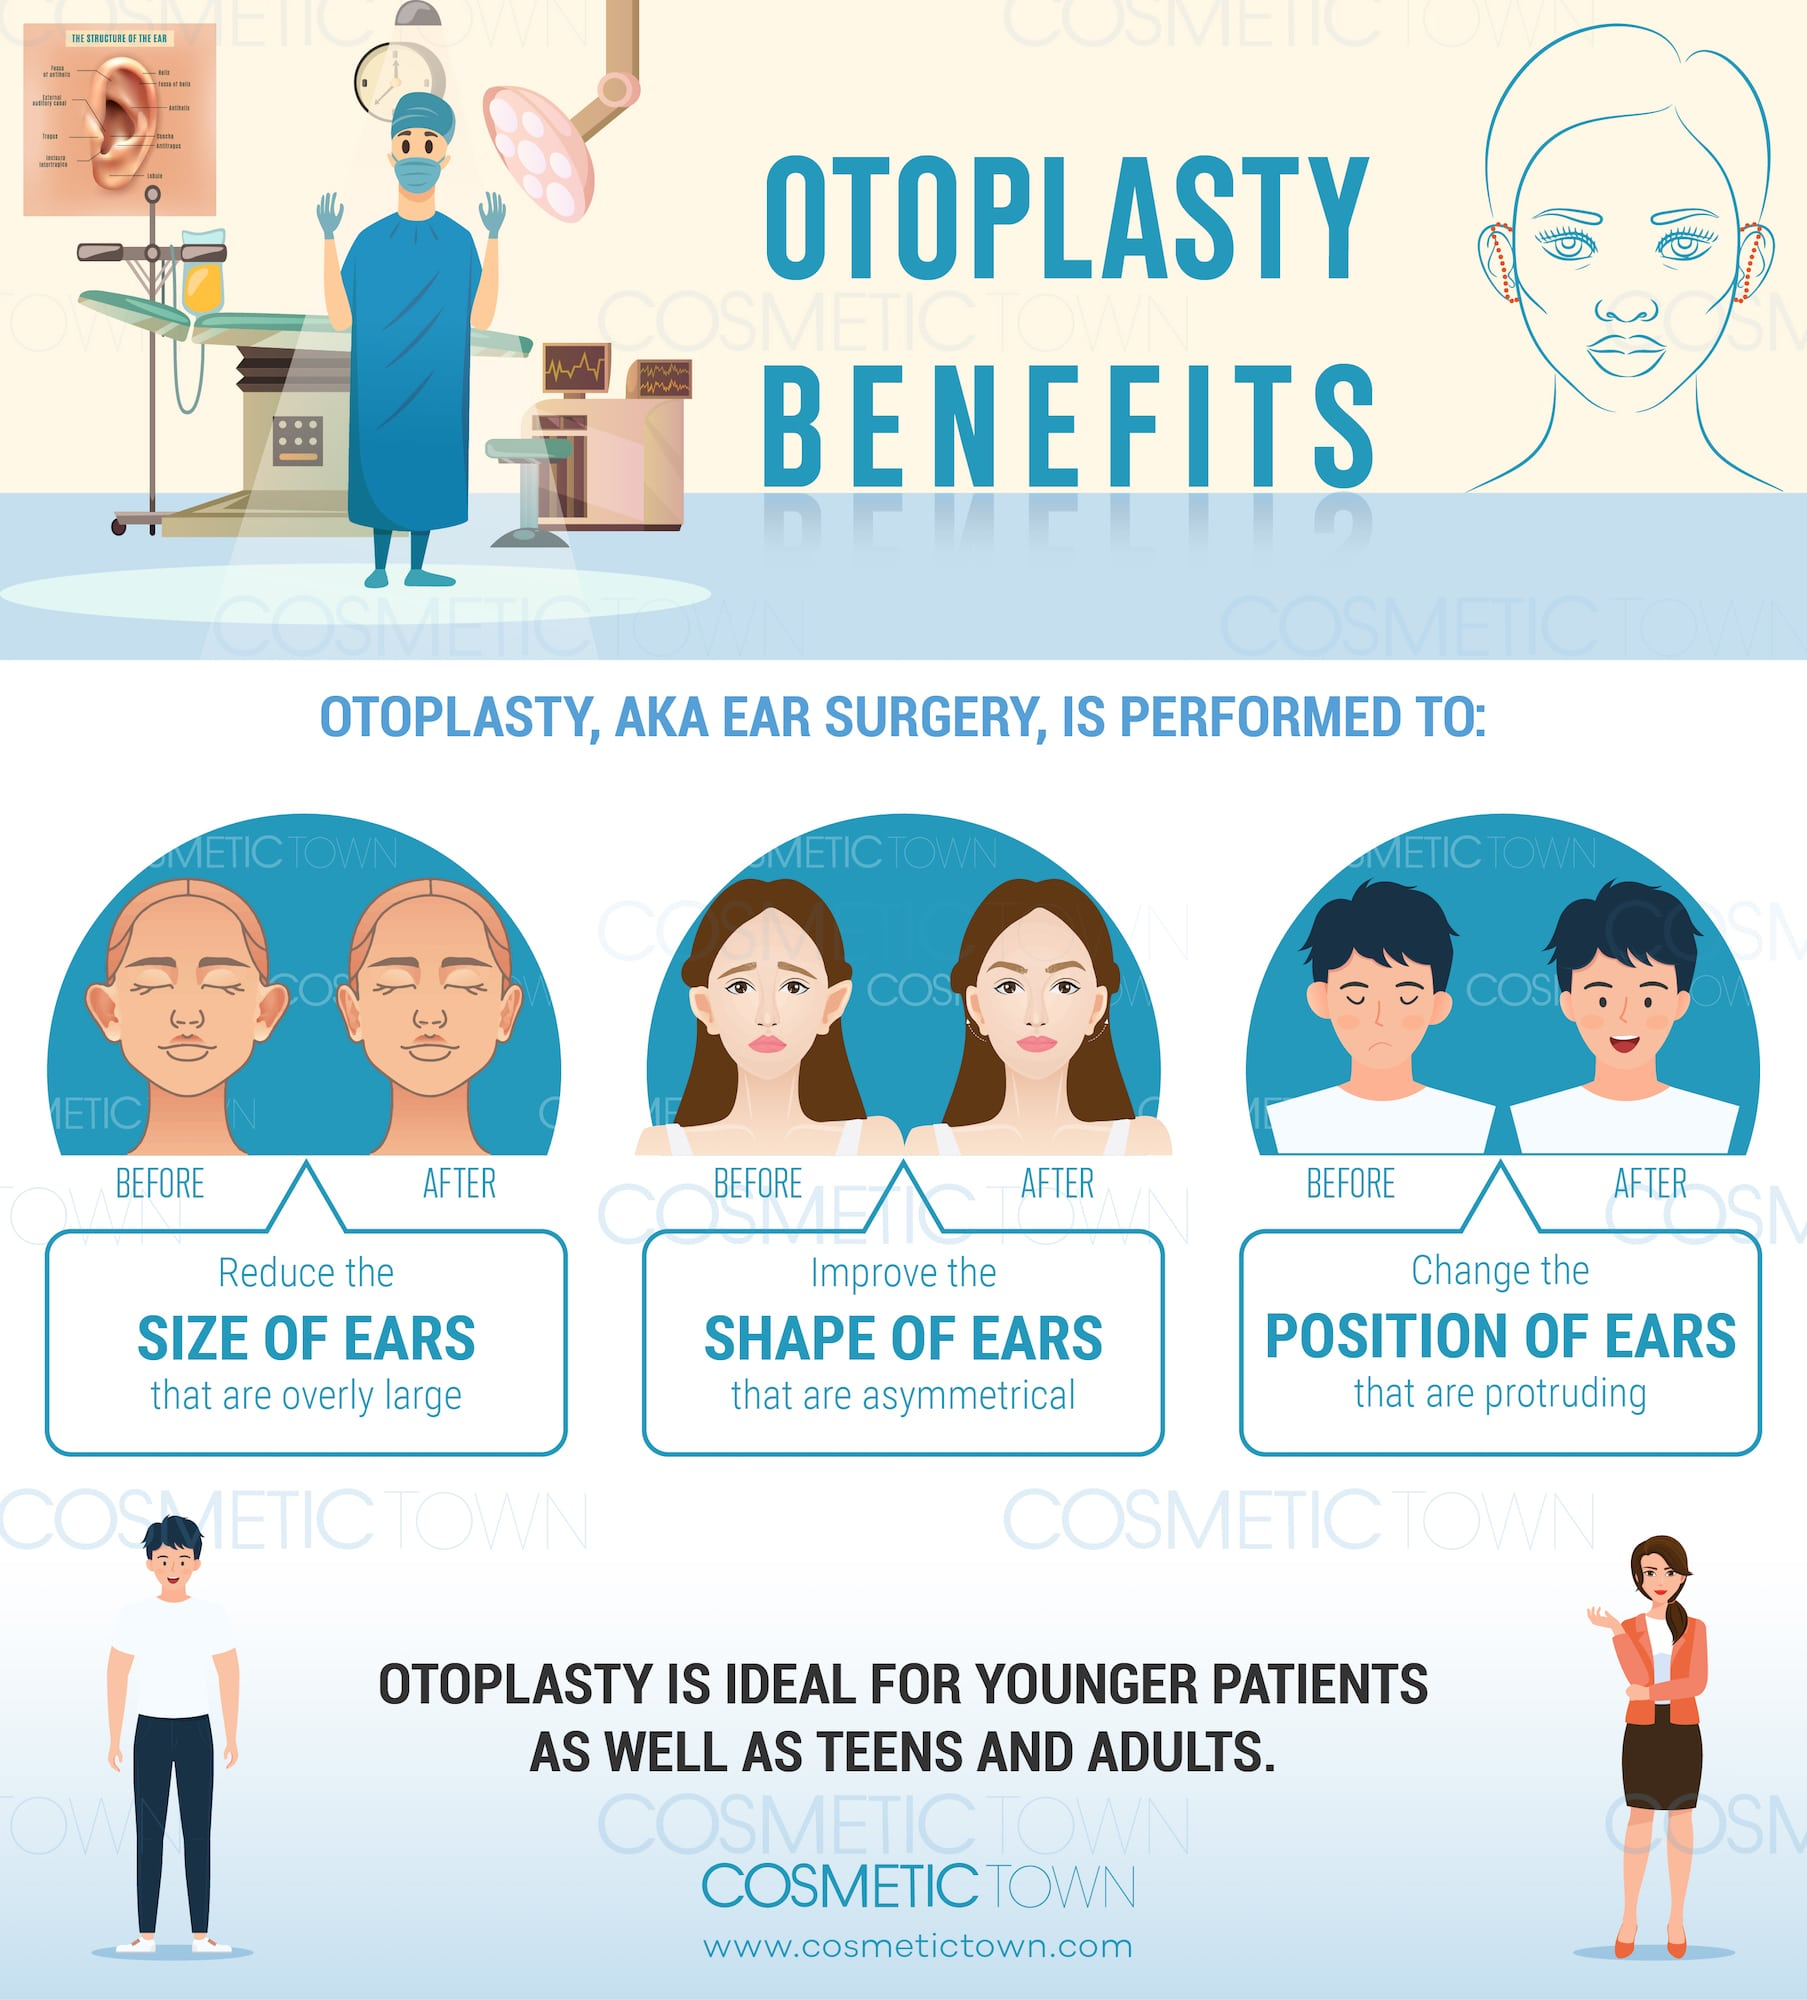 Learn about the benefits of otoplasty